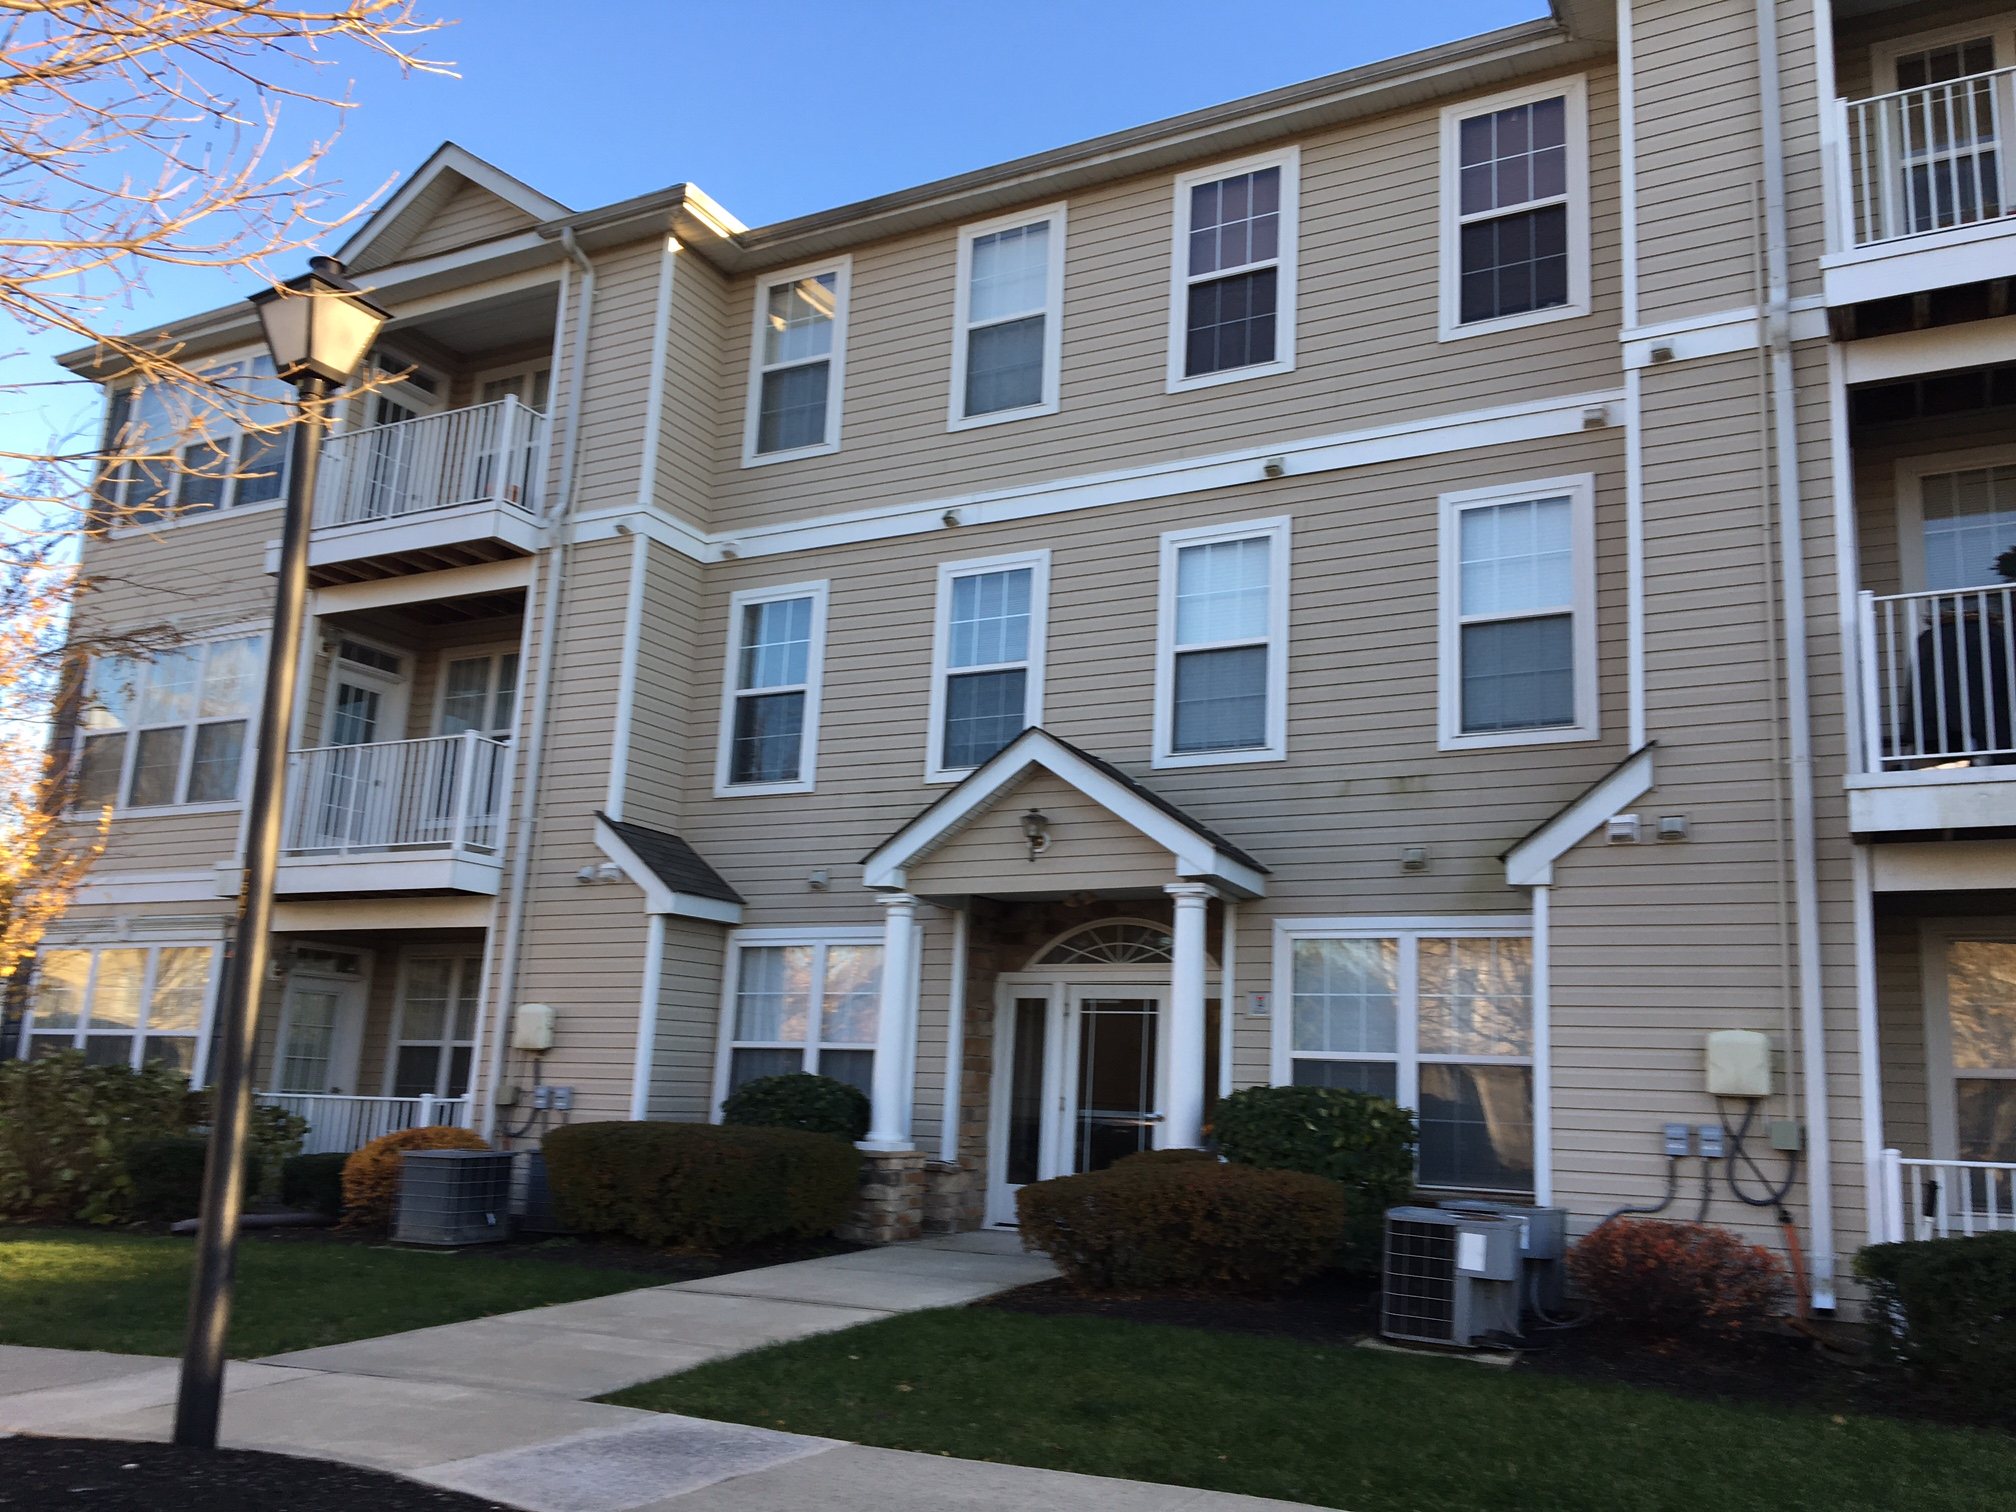 Apartment for Rent at Scotch Run - Two Bedroom for Rent 44 Kyle Way Ewing, 08628 United States